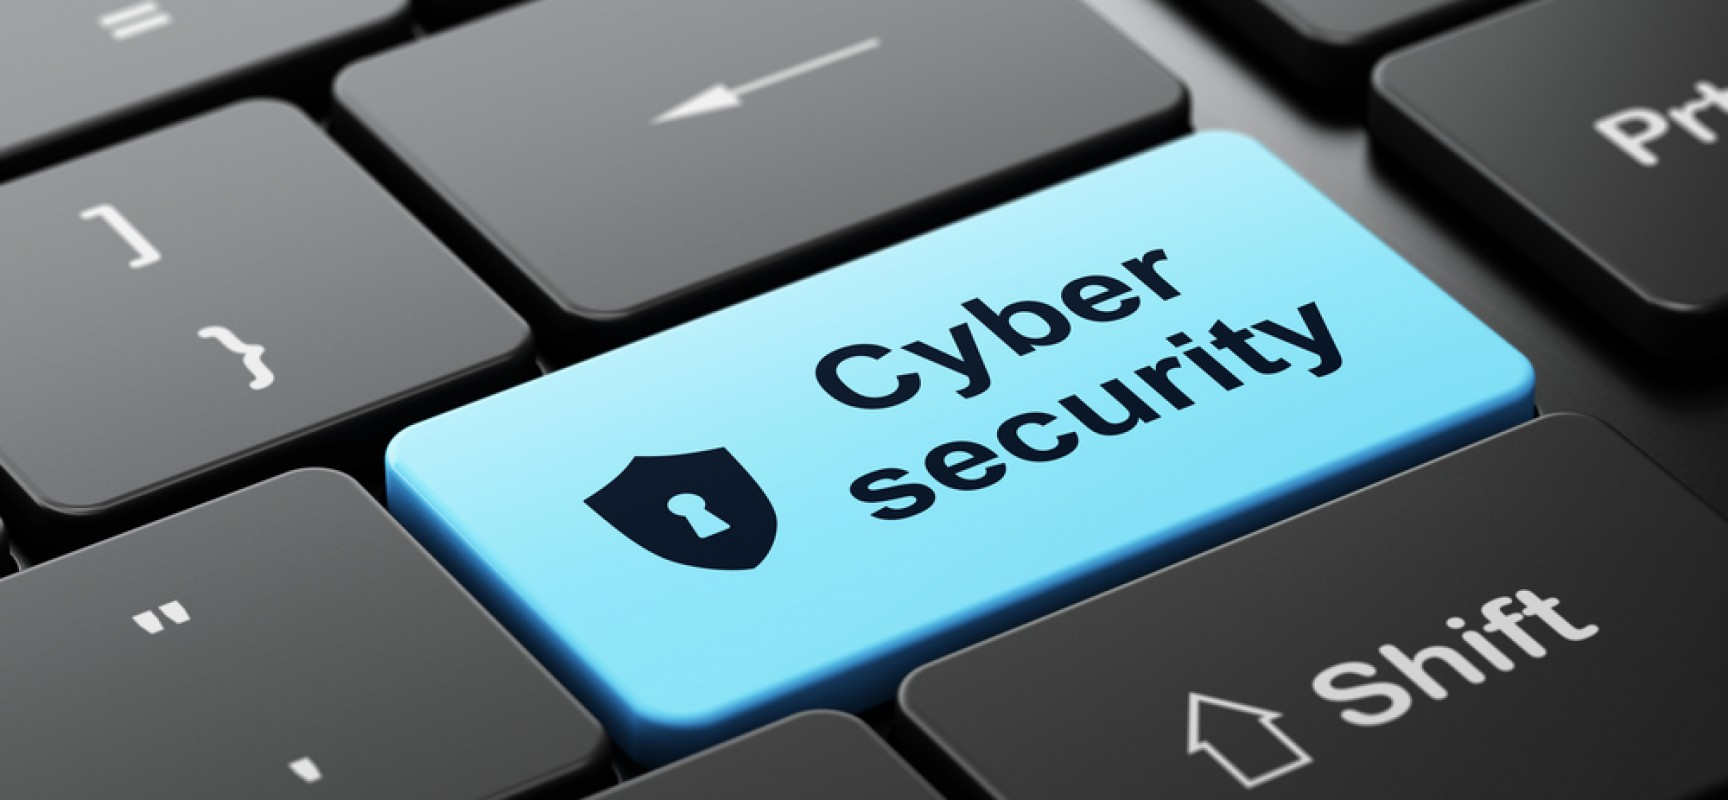 Over 120 Qatari CIOs and CISO will discuss developing cyber security resilience